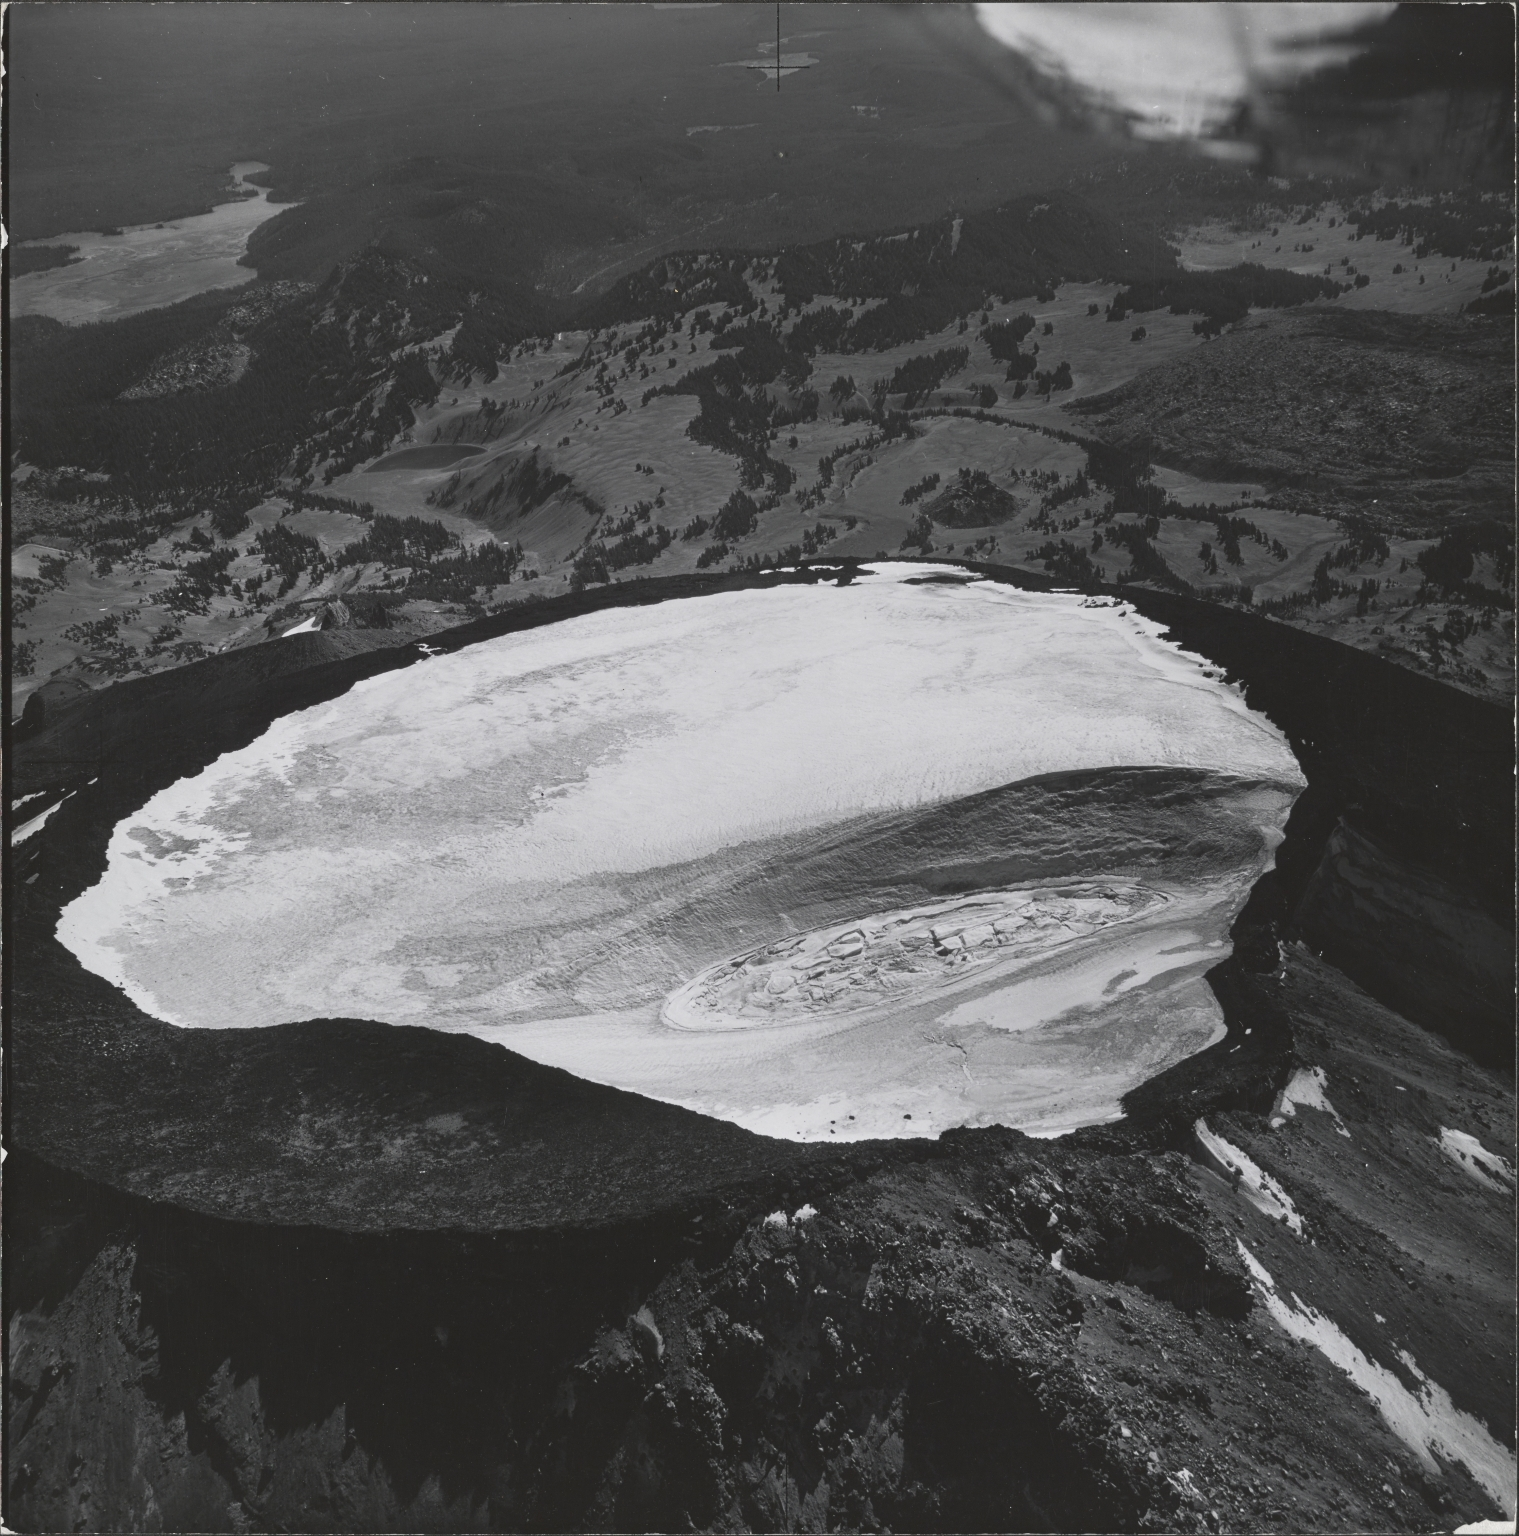 South Sister, aerial photograph roll no. 21 exposure no. 87, Oregon